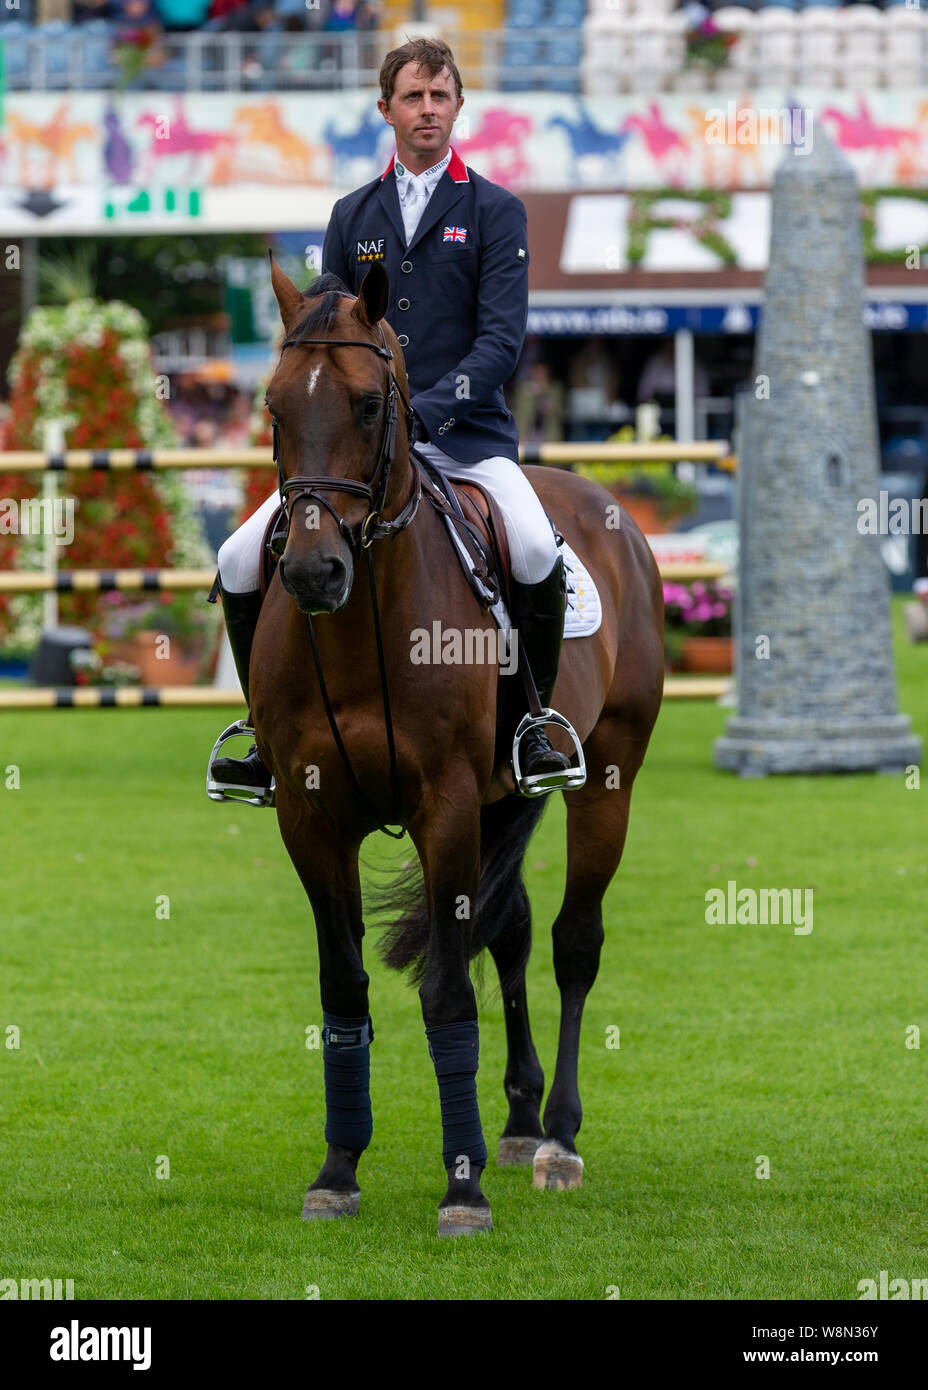 Dublin, Ireland 09 august 2019. Ben Mahar for Team GB compete for the Aga Khan Cup in the Longines Nations Cup Show Jumping at the RDS Dublin Horse Show. Credit: John Rymer/Alamy Live News Stock Photo